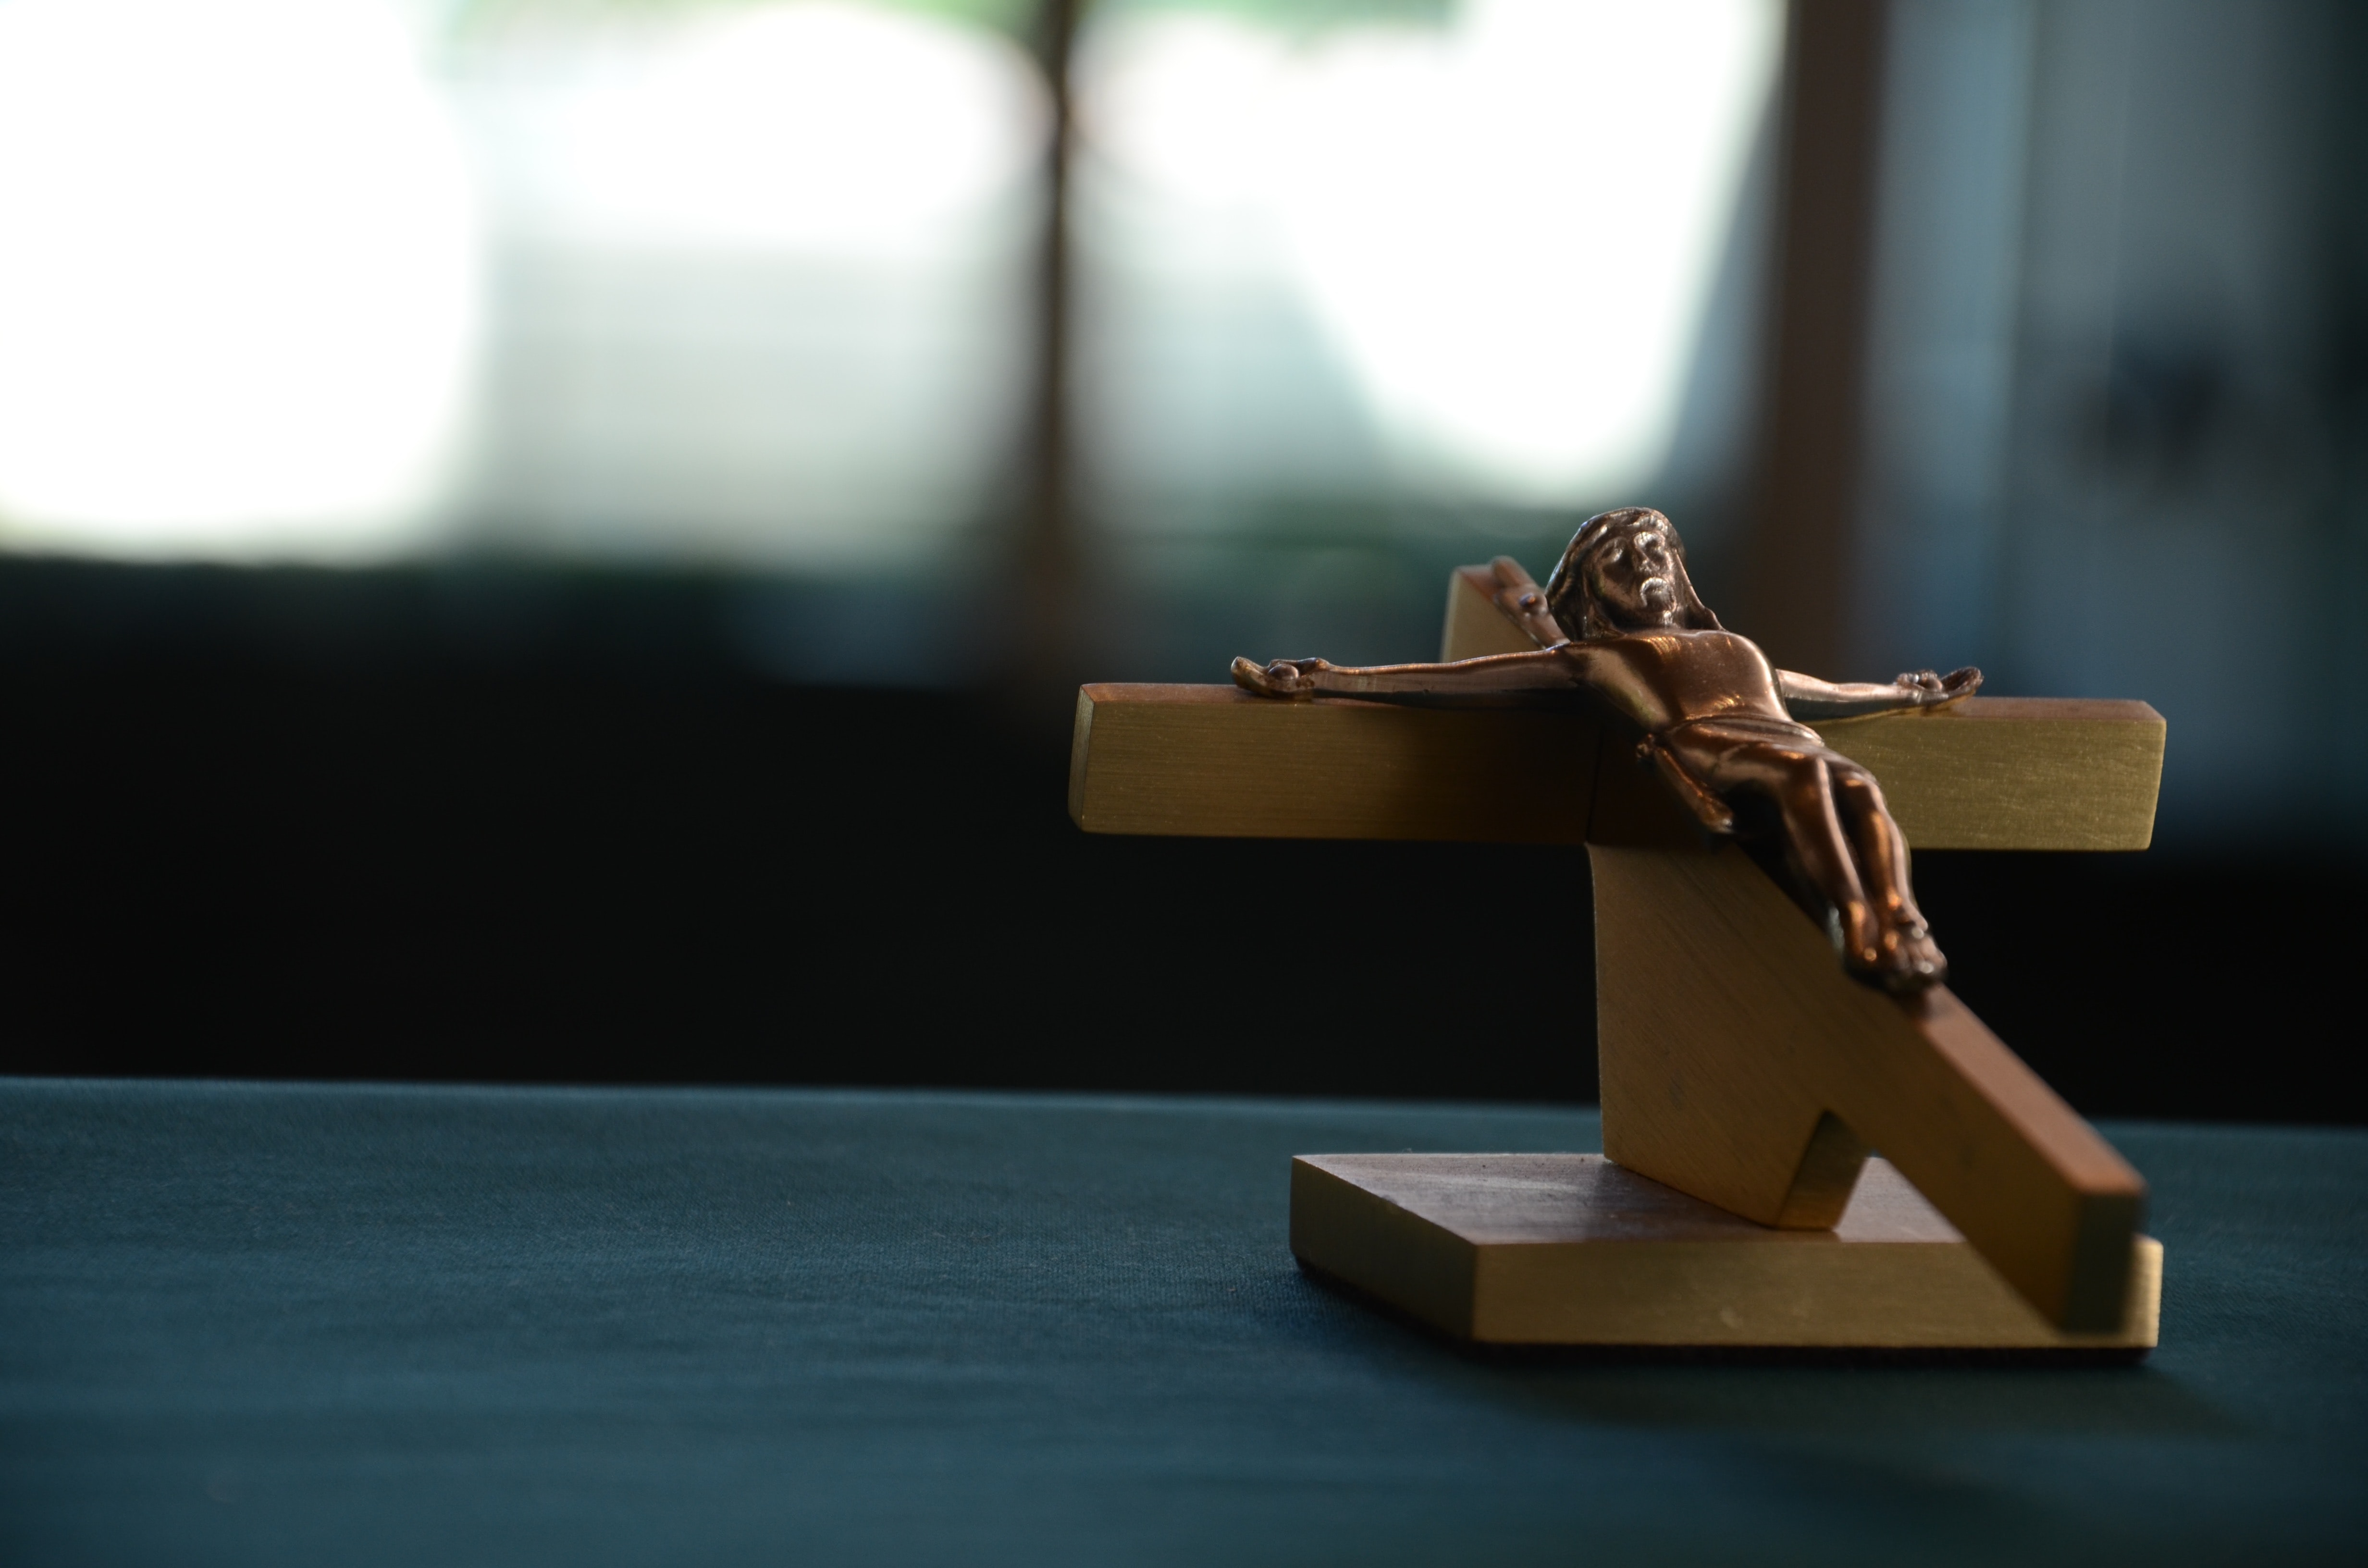 Wooden crucifix with figure of Jesus laying on a dark table